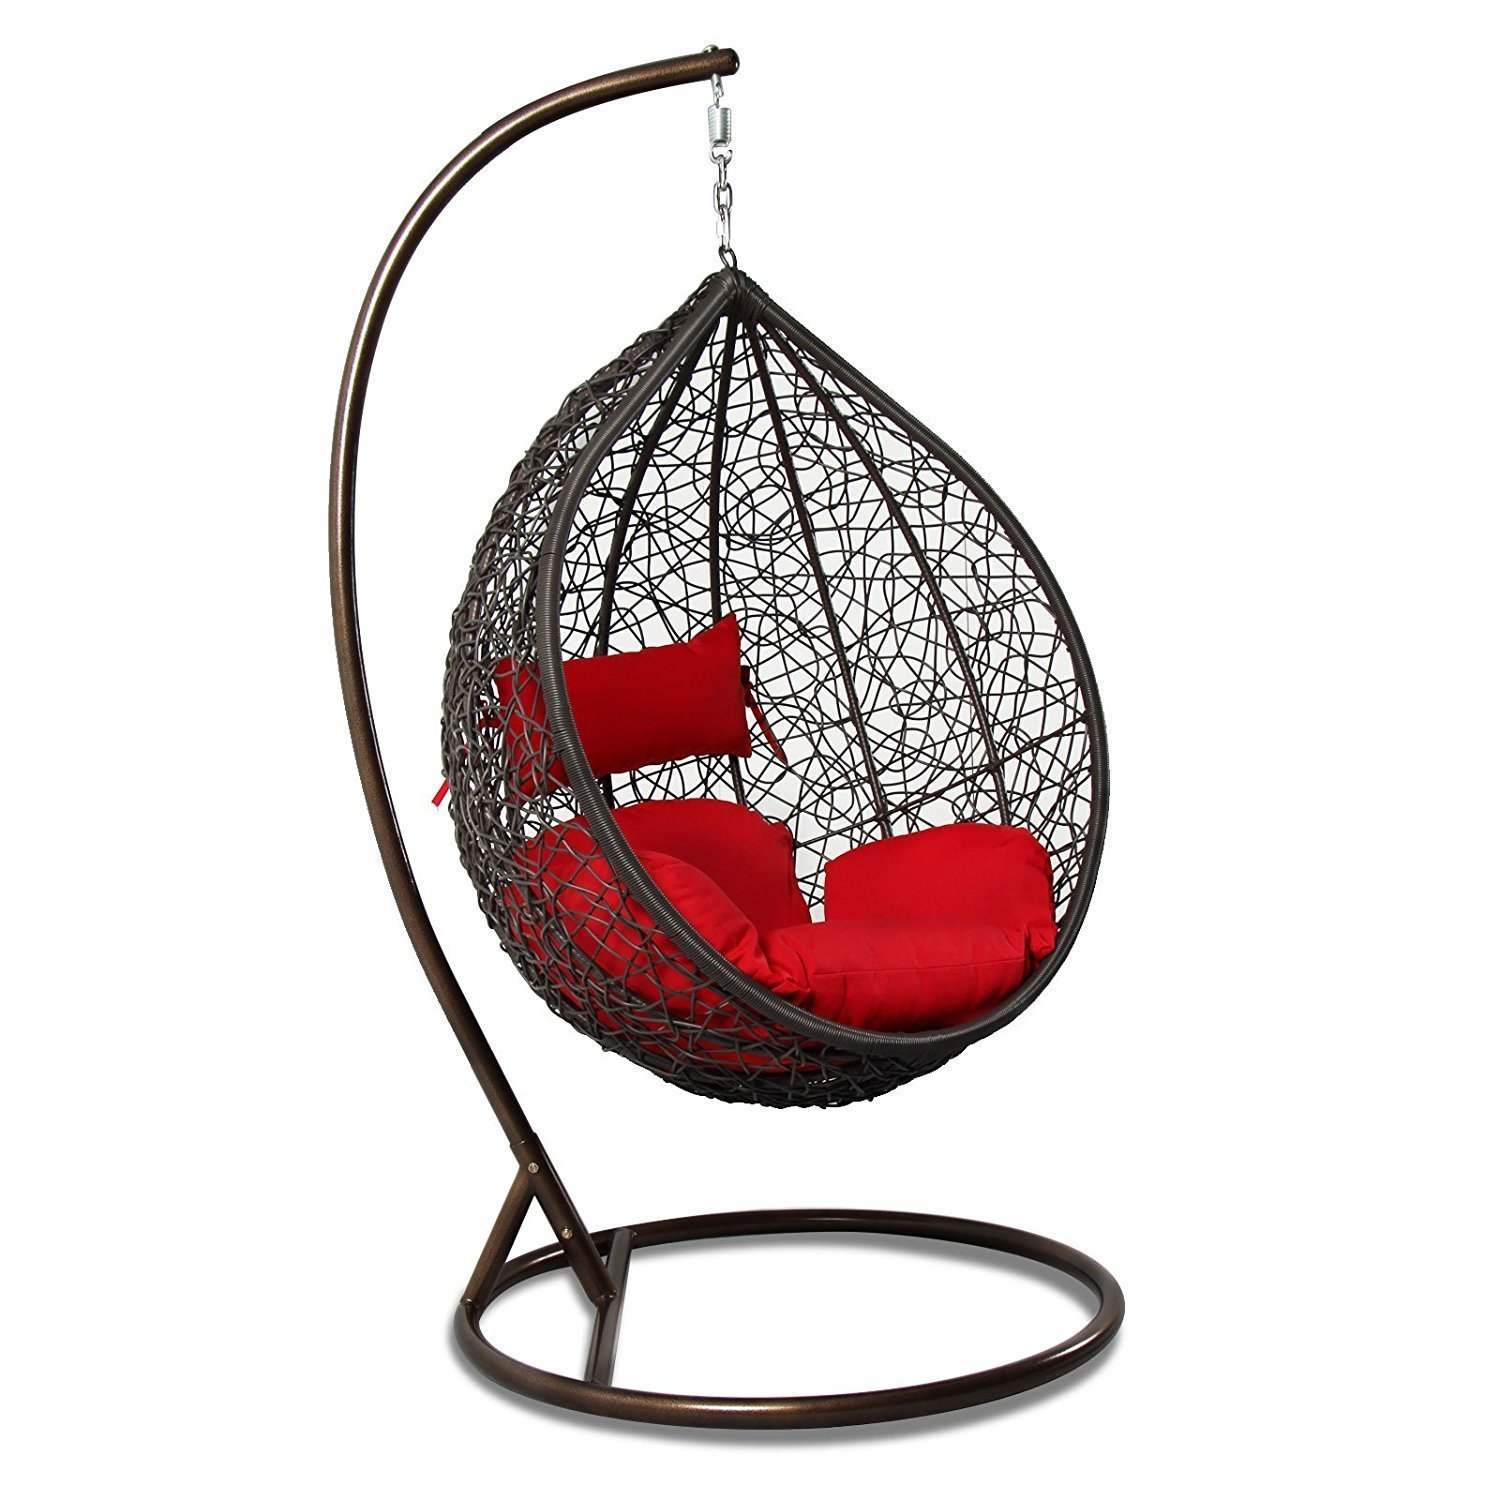 THeCORP Garden Decor Hand Woven Wickers Single Hanging Swing Chair With Cushion For Indoor And Outdoor (Brown Wicker, Red Cushion)